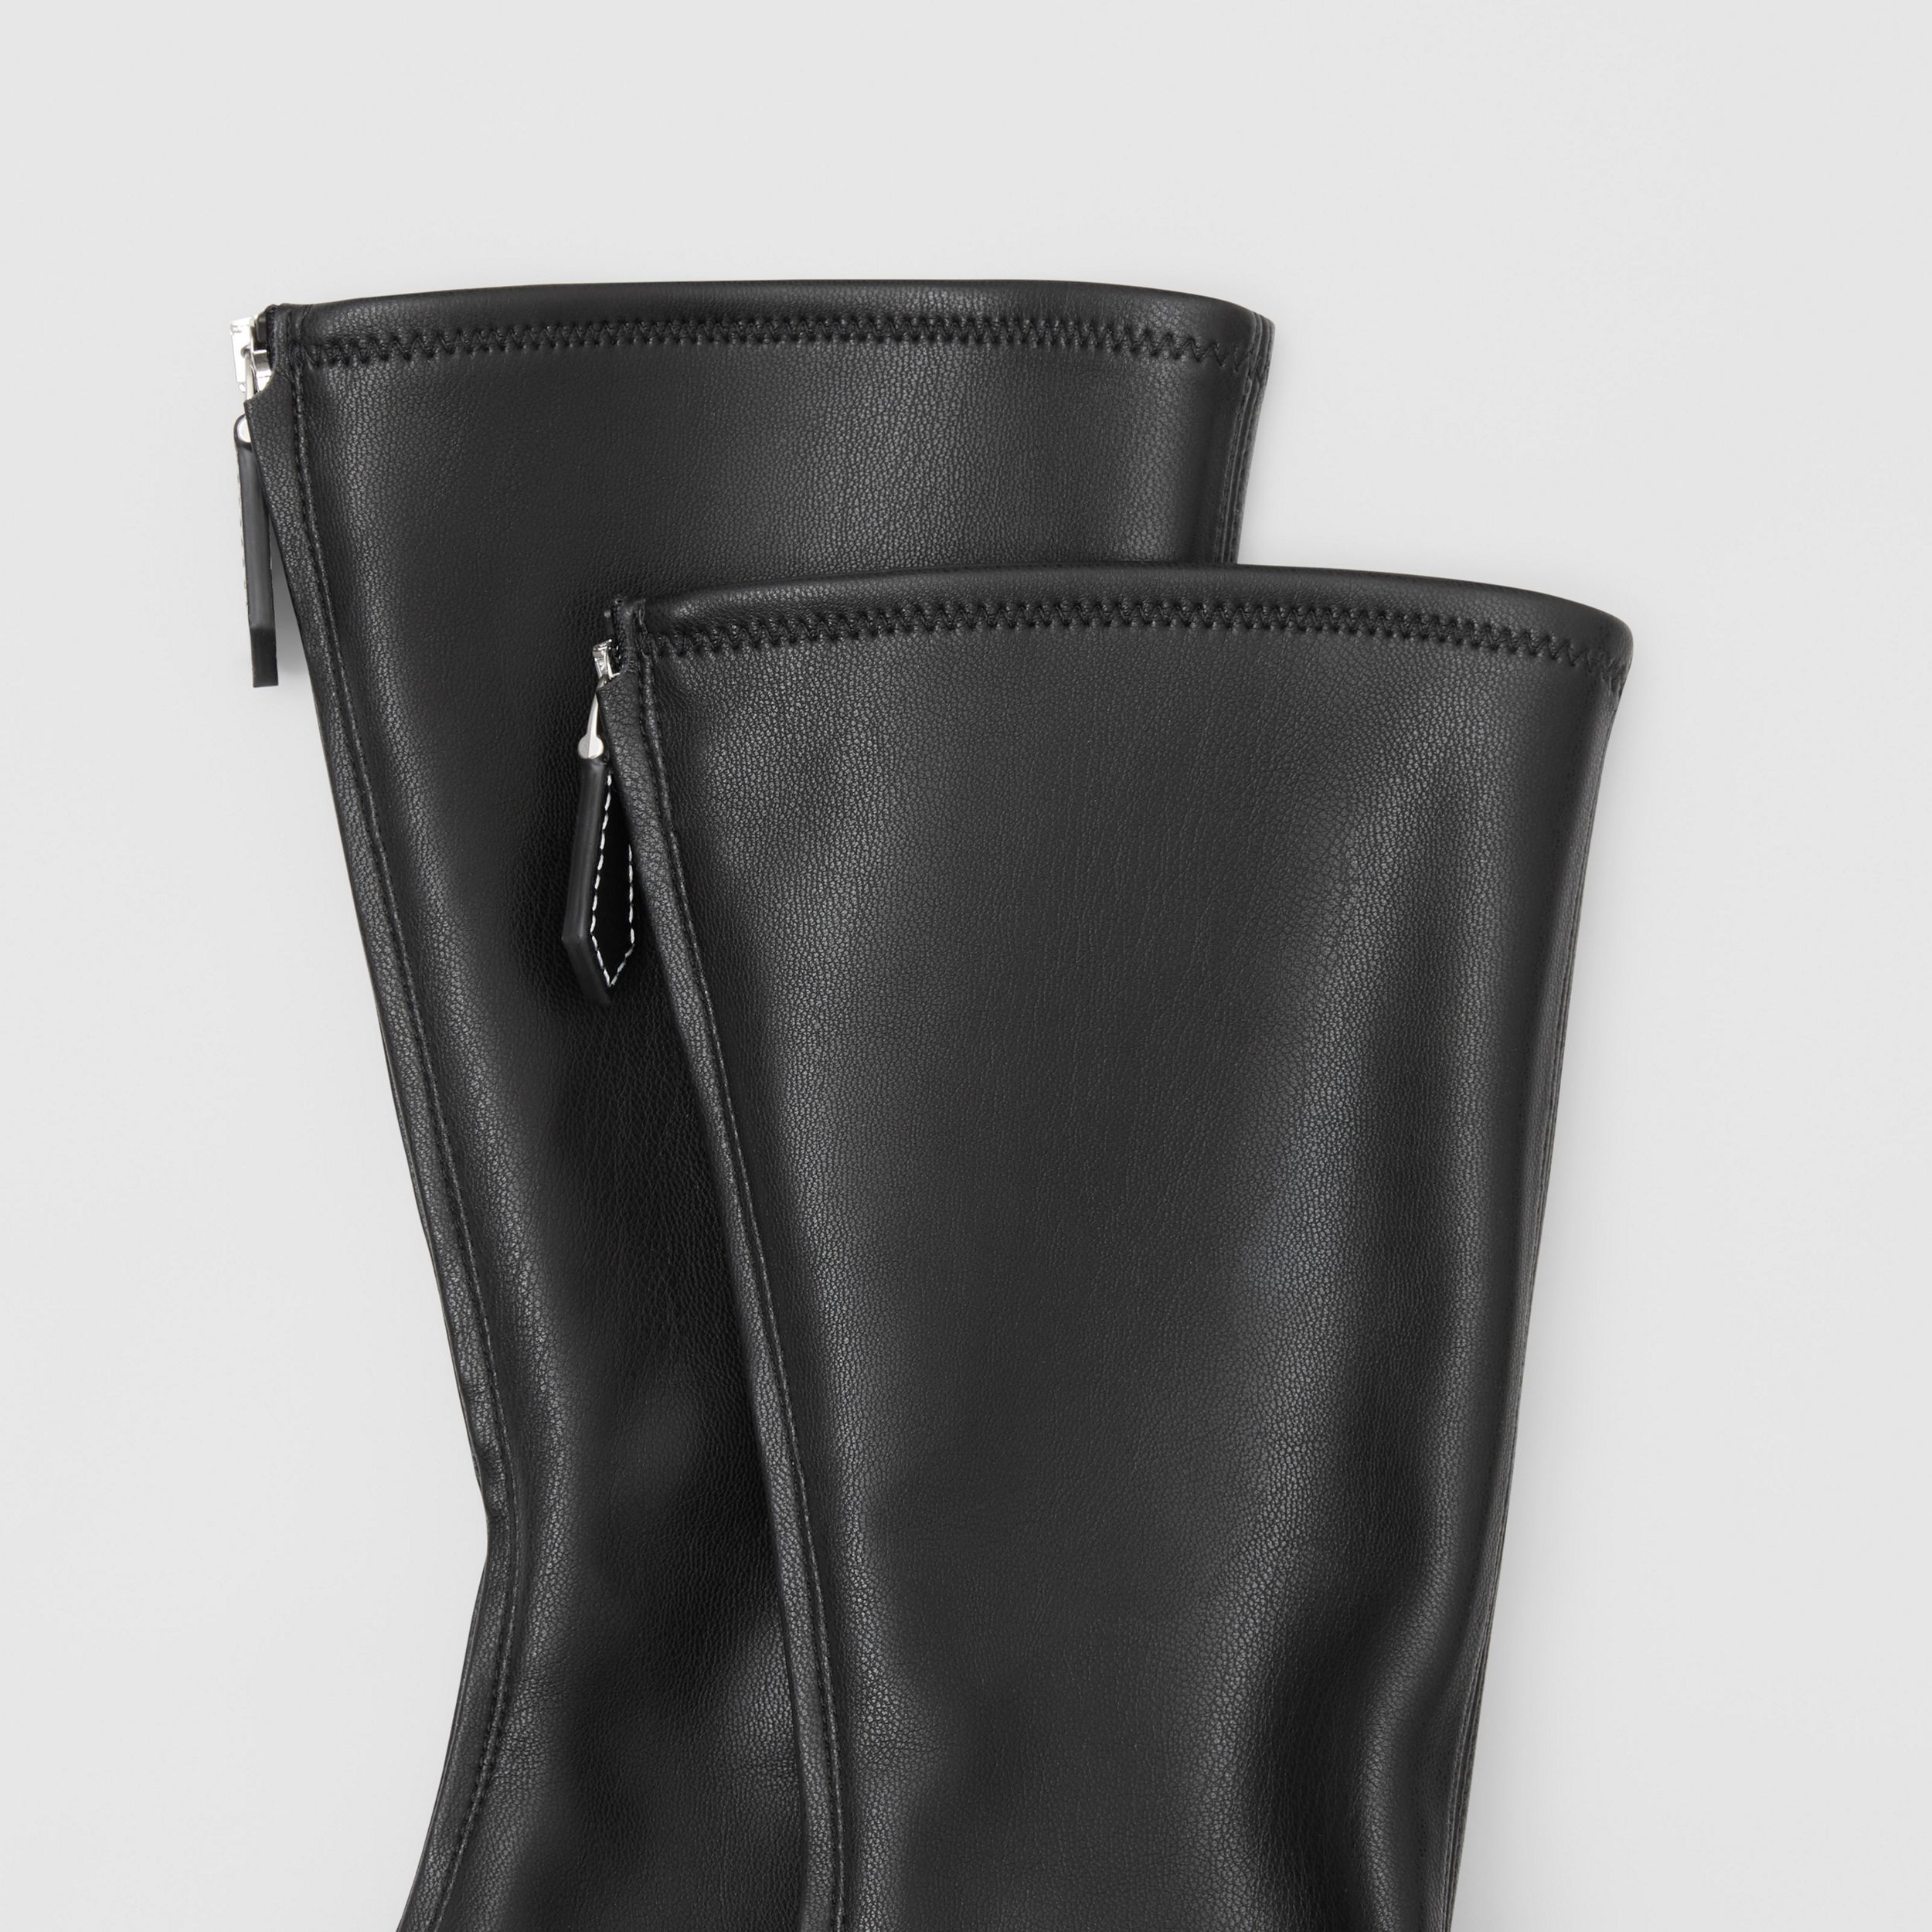 Faux Leather Mid-calf Socks in Black - Women | Burberry United Kingdom - 2